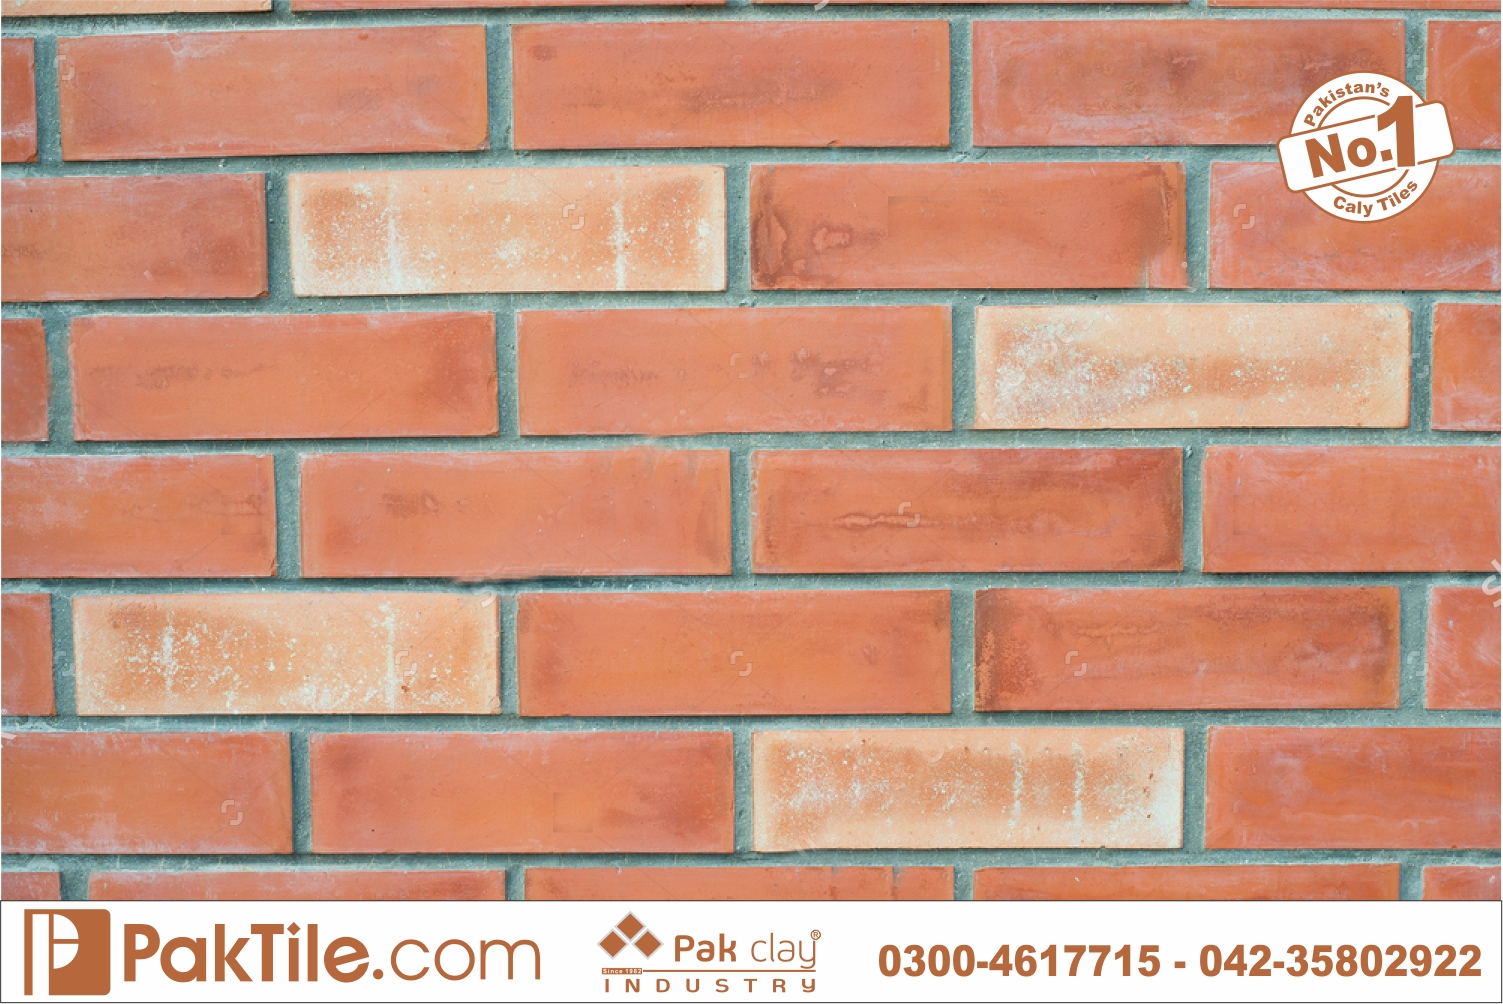 6 Pak clay gutka tiles color red brick price in pakistan images